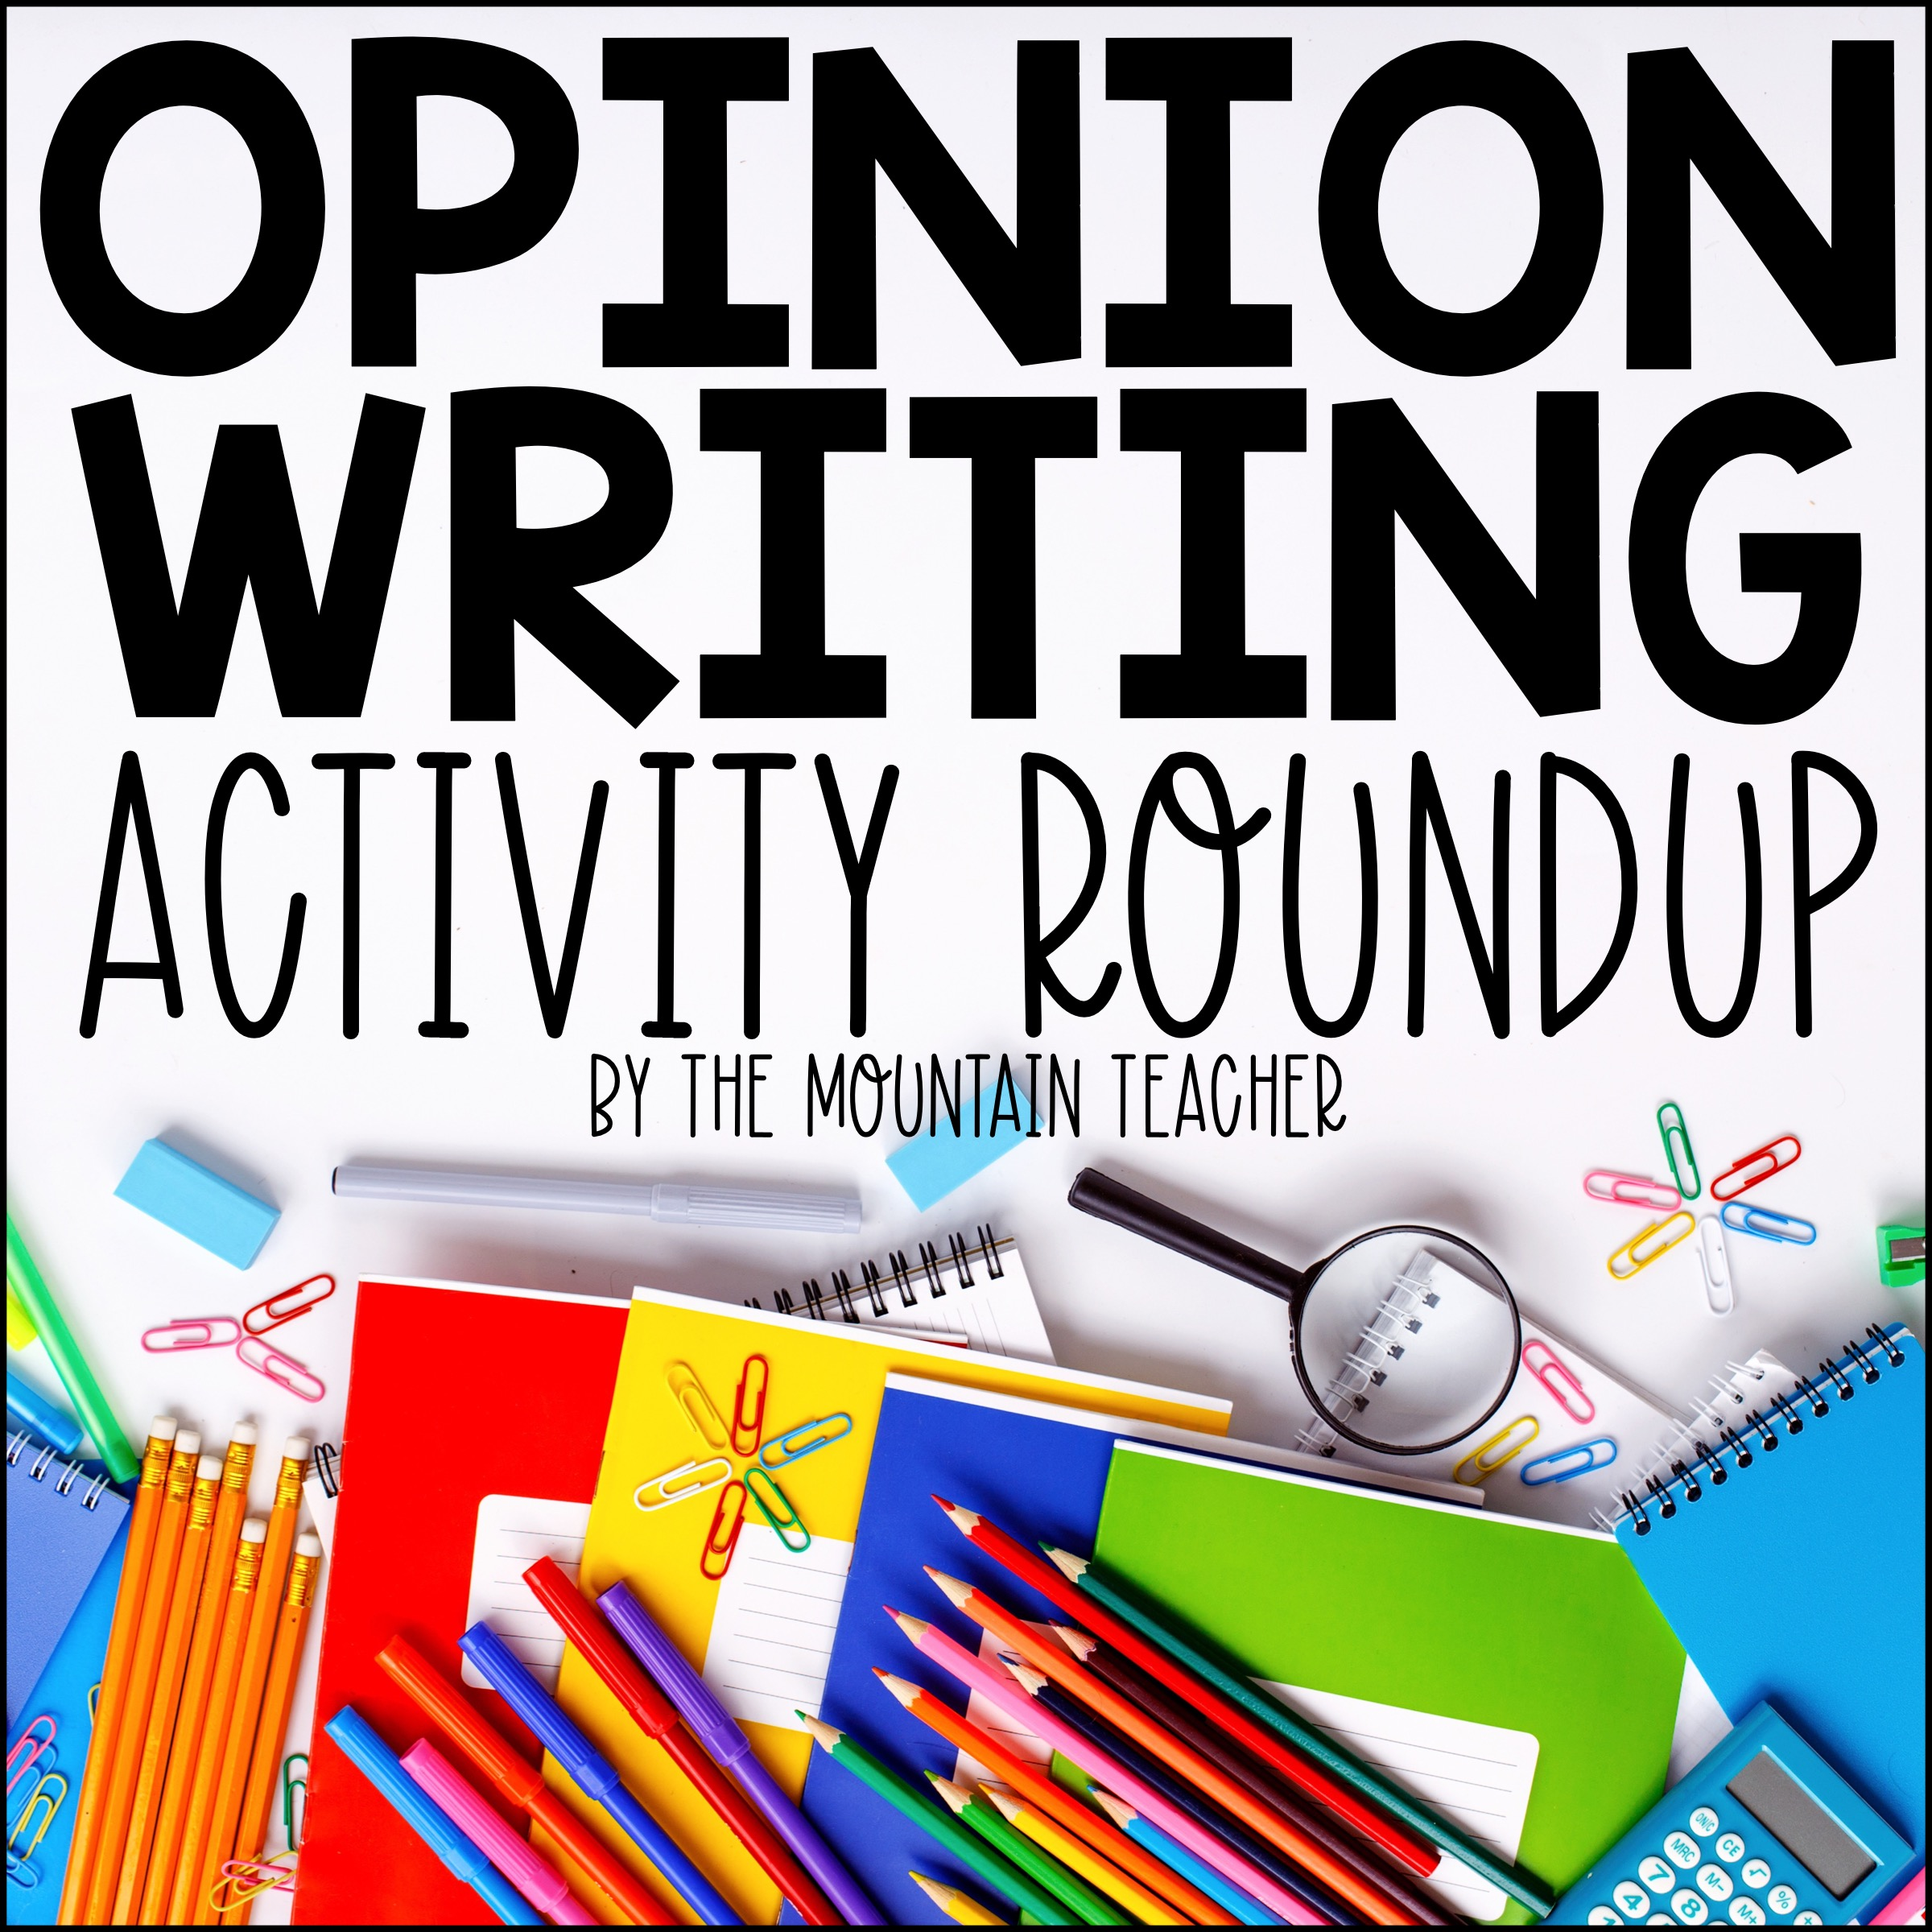 Opinion Writing Activity Round Up